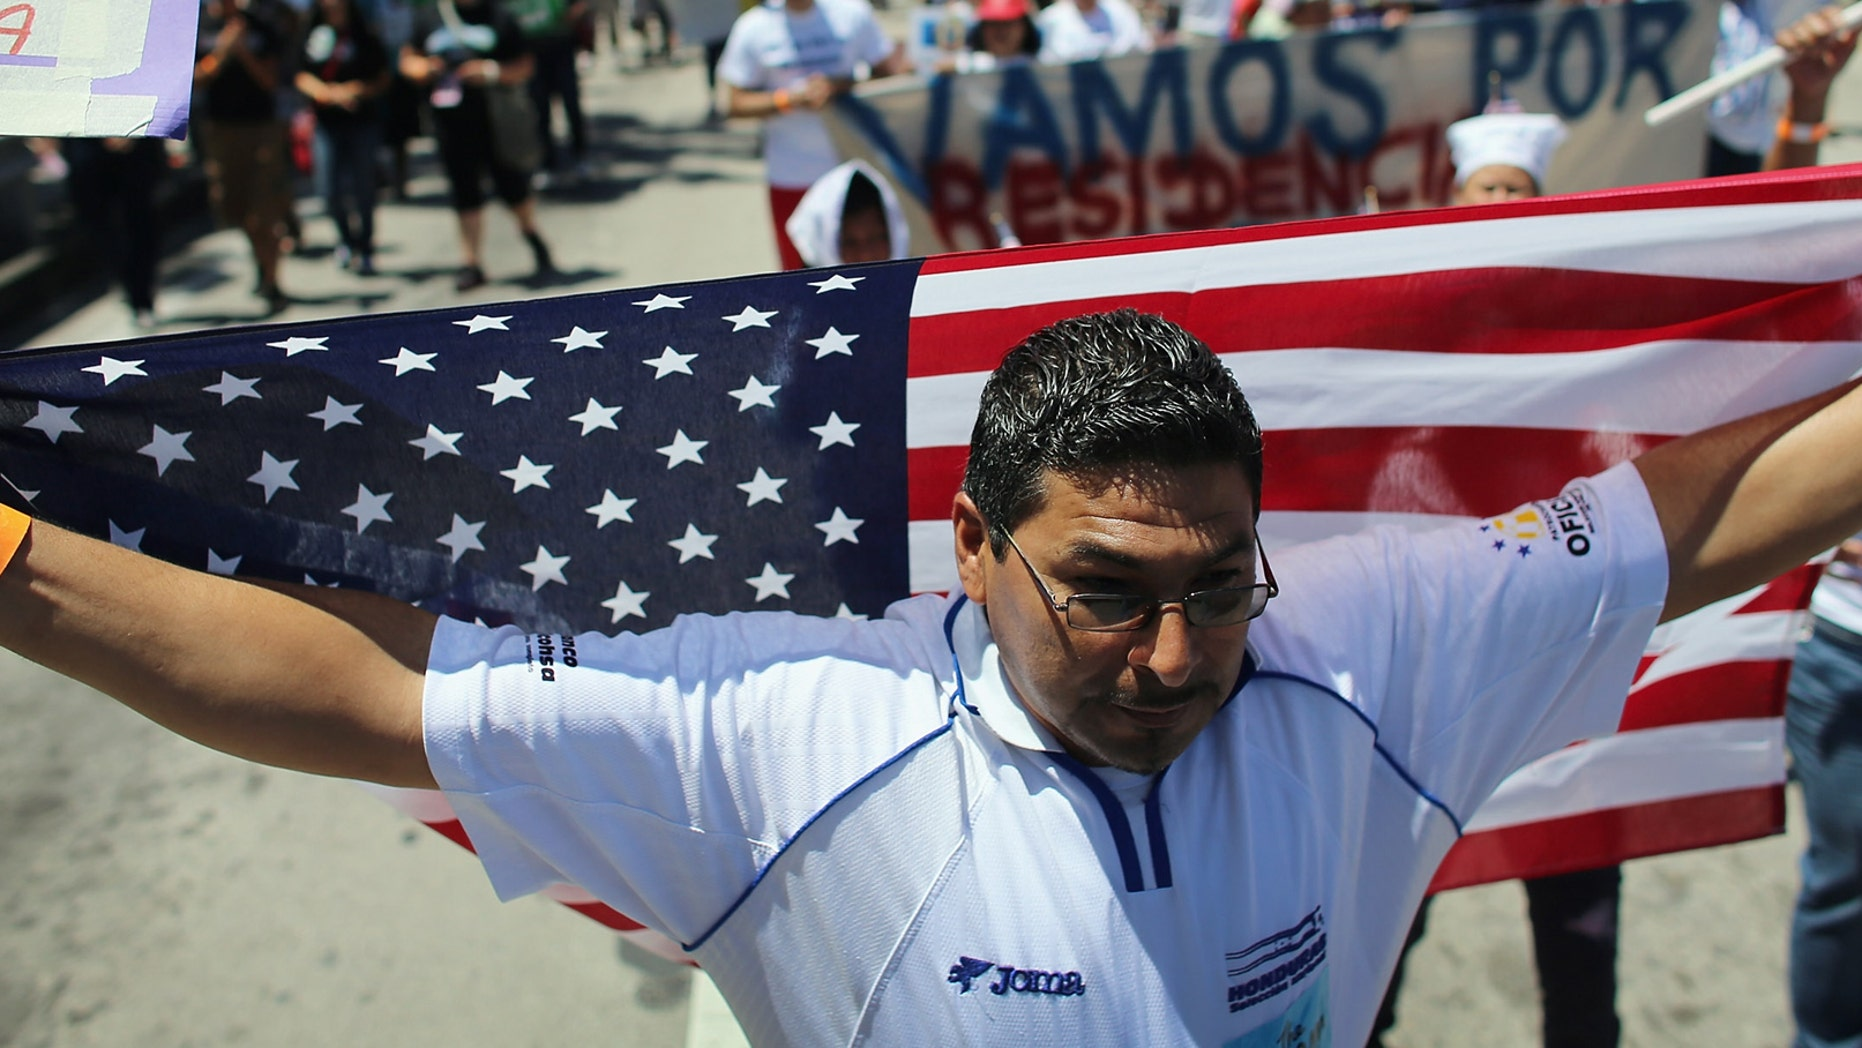 MIAMI, FL - APRIL 06: Julio Magana and others participate in a march that organizers said was an attempt to get the U.S. Congress to say yes to immigration reform on April 6, 2013 in Miami, Florida. The marchers were calling for a new immigration system with a real and inclusive path to citizenship for 11 million aspiring Americans, and to keep families together.  (Photo by Joe Raedle/Getty Images)